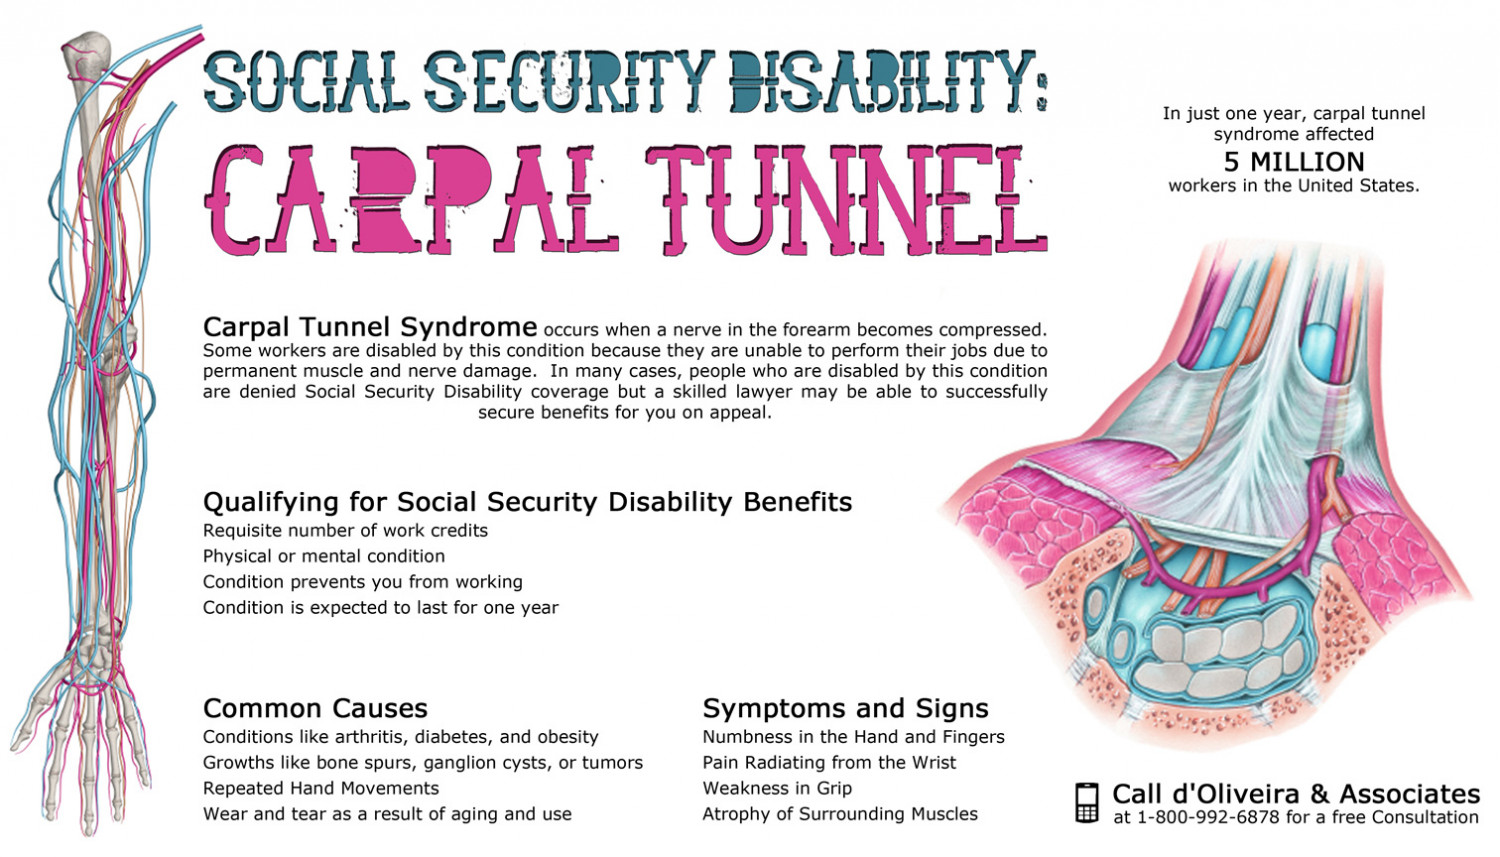 Social Security Disability: Carpal Tunnel Syndrome Infographic